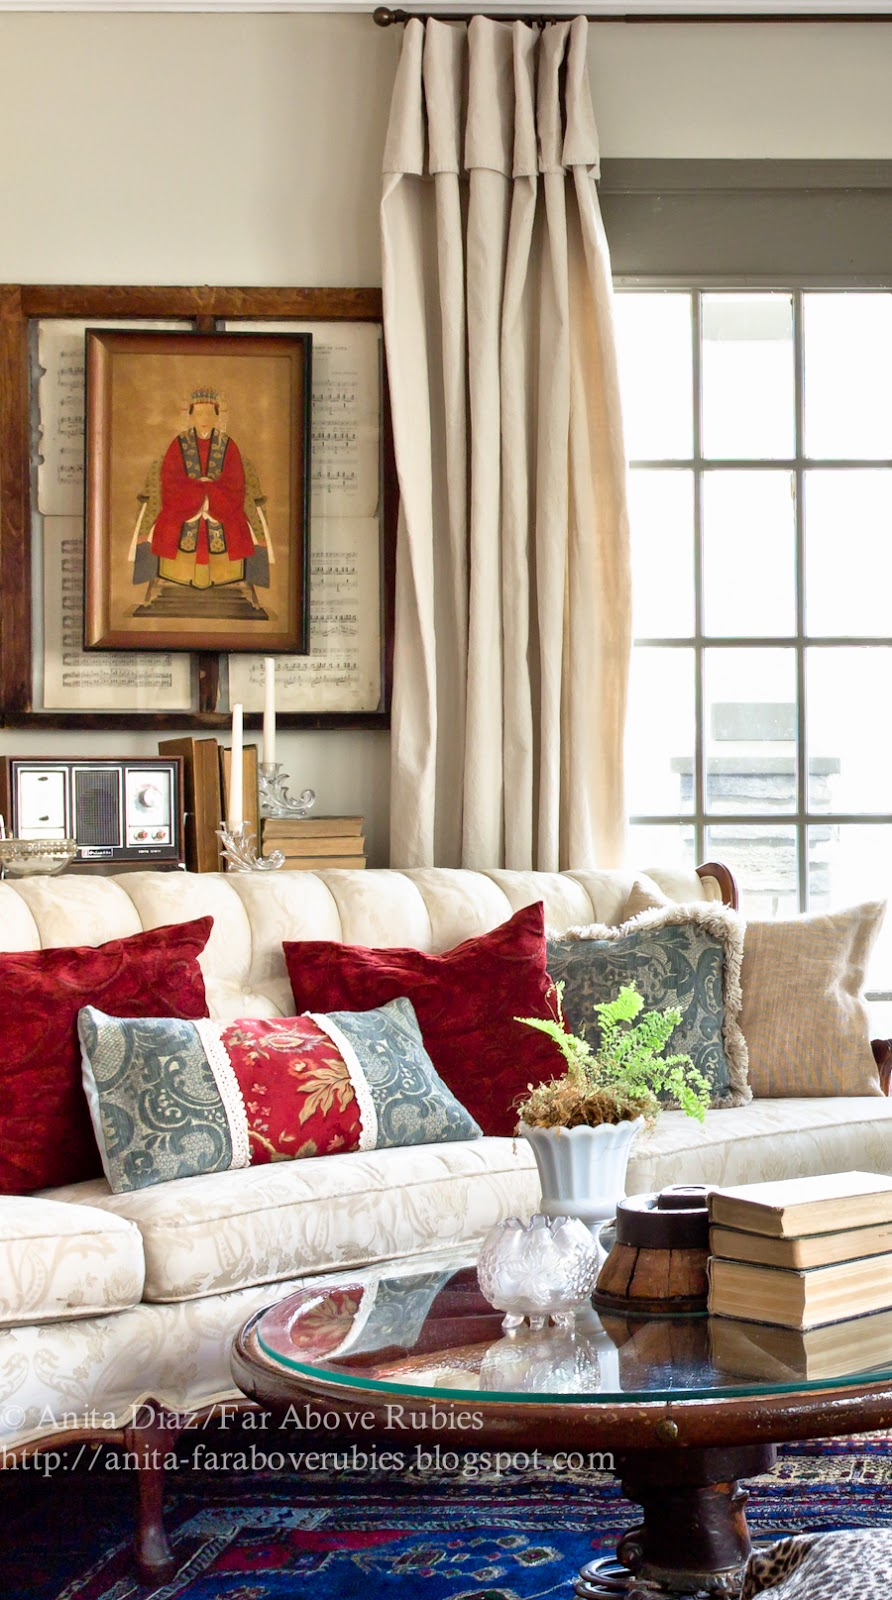 Far above rubies more diy drop cloth curtains in the living room for Diy curtain ideas for living room